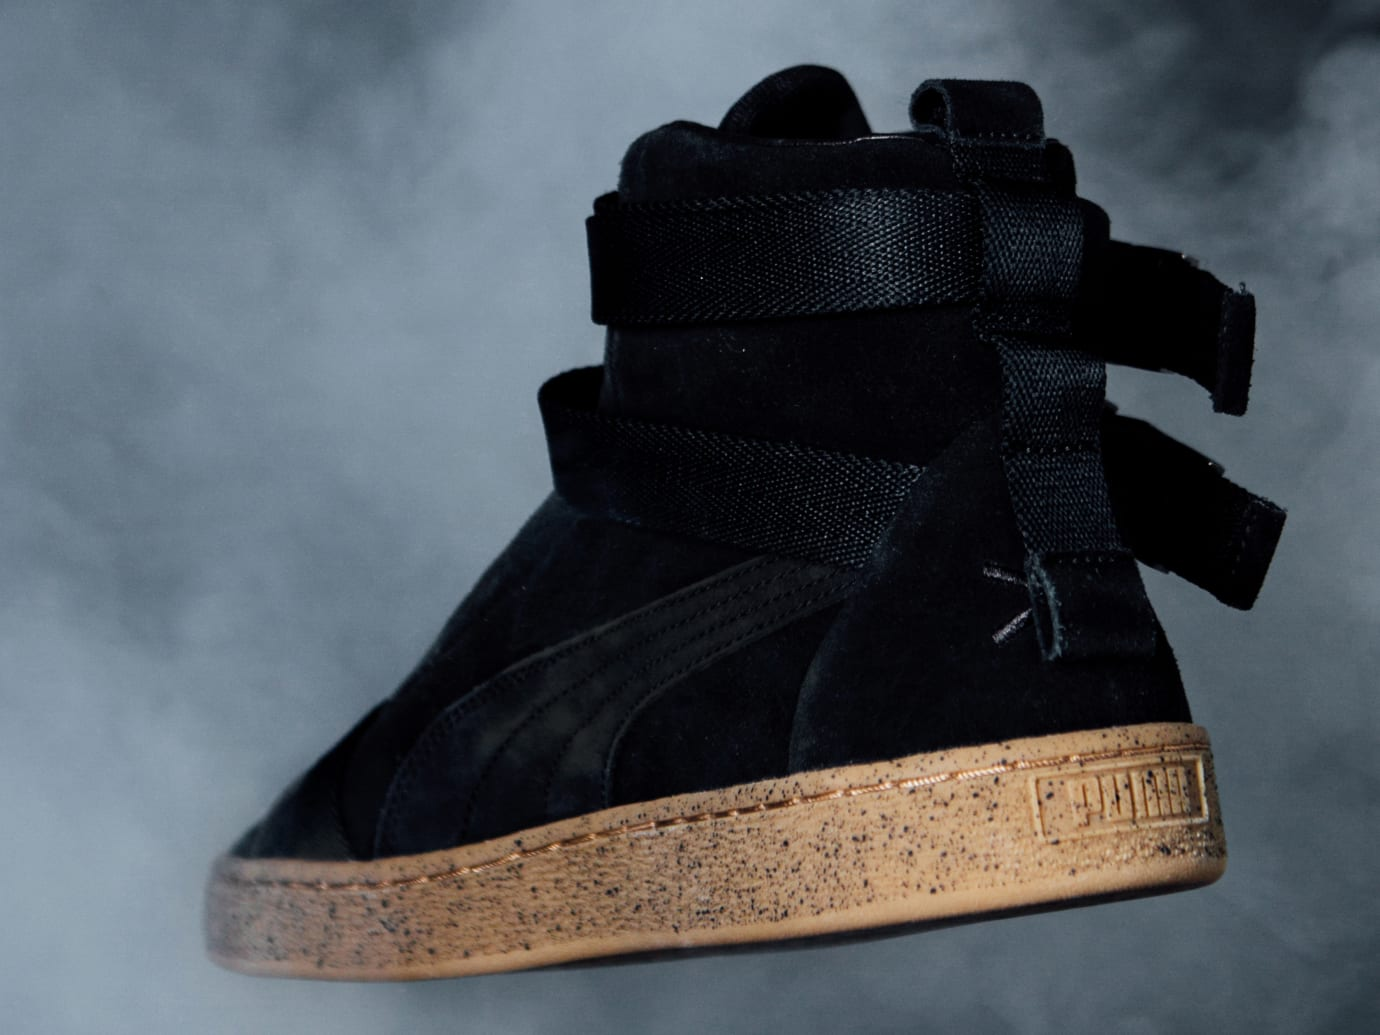 Image via Puma the-weeknd-x-puma-suede 8a9b30ce5